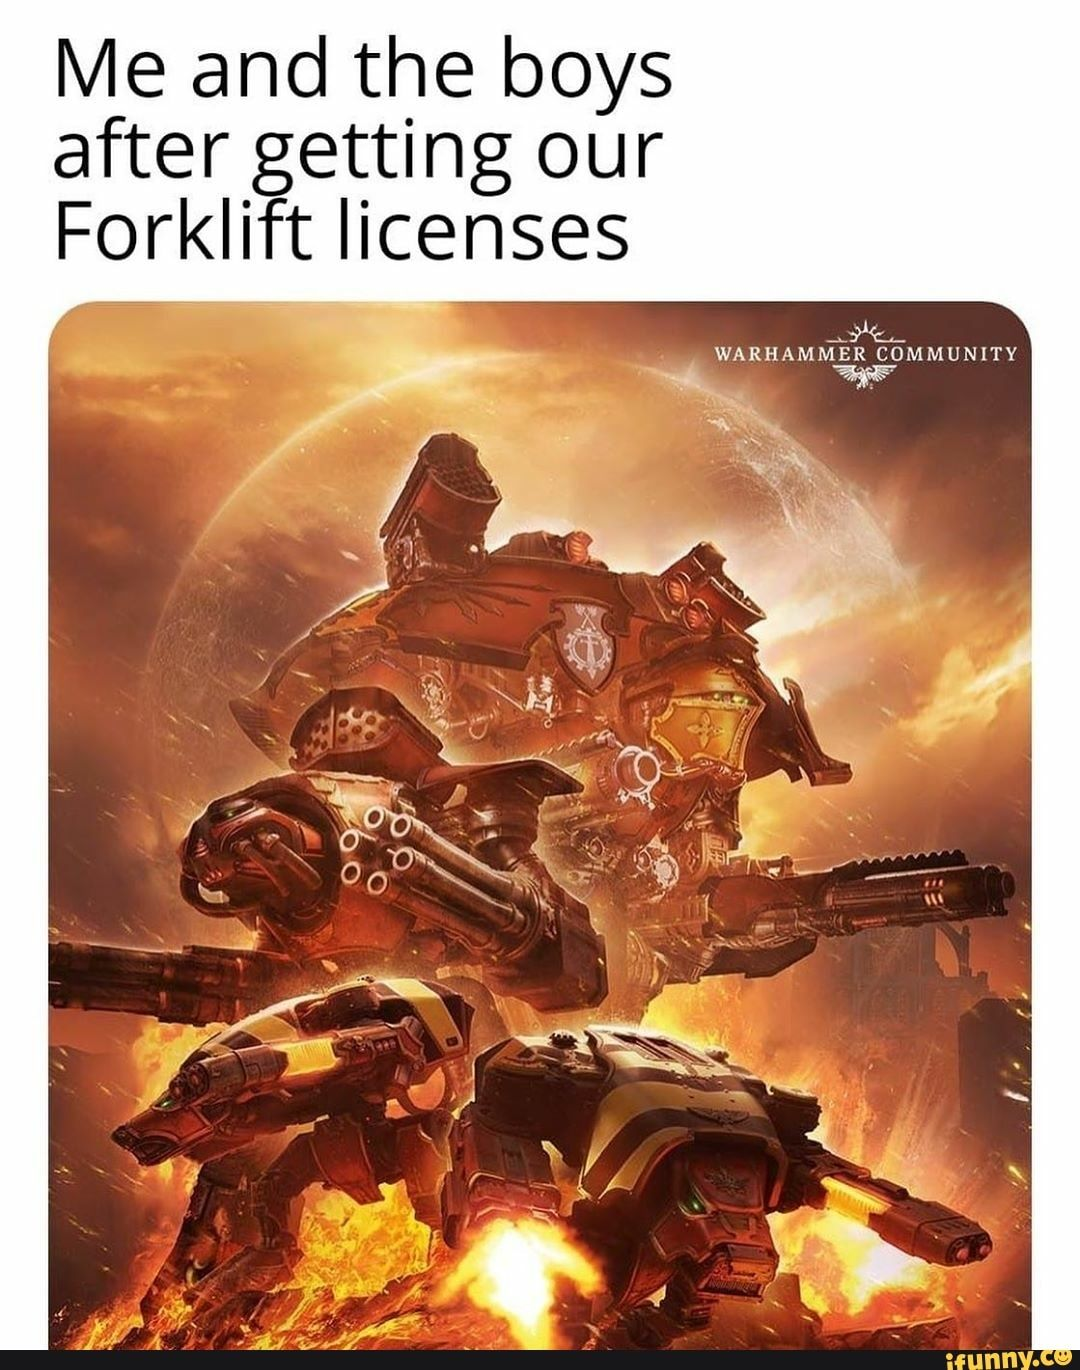 Me and the boys after getting our Forklift licenses